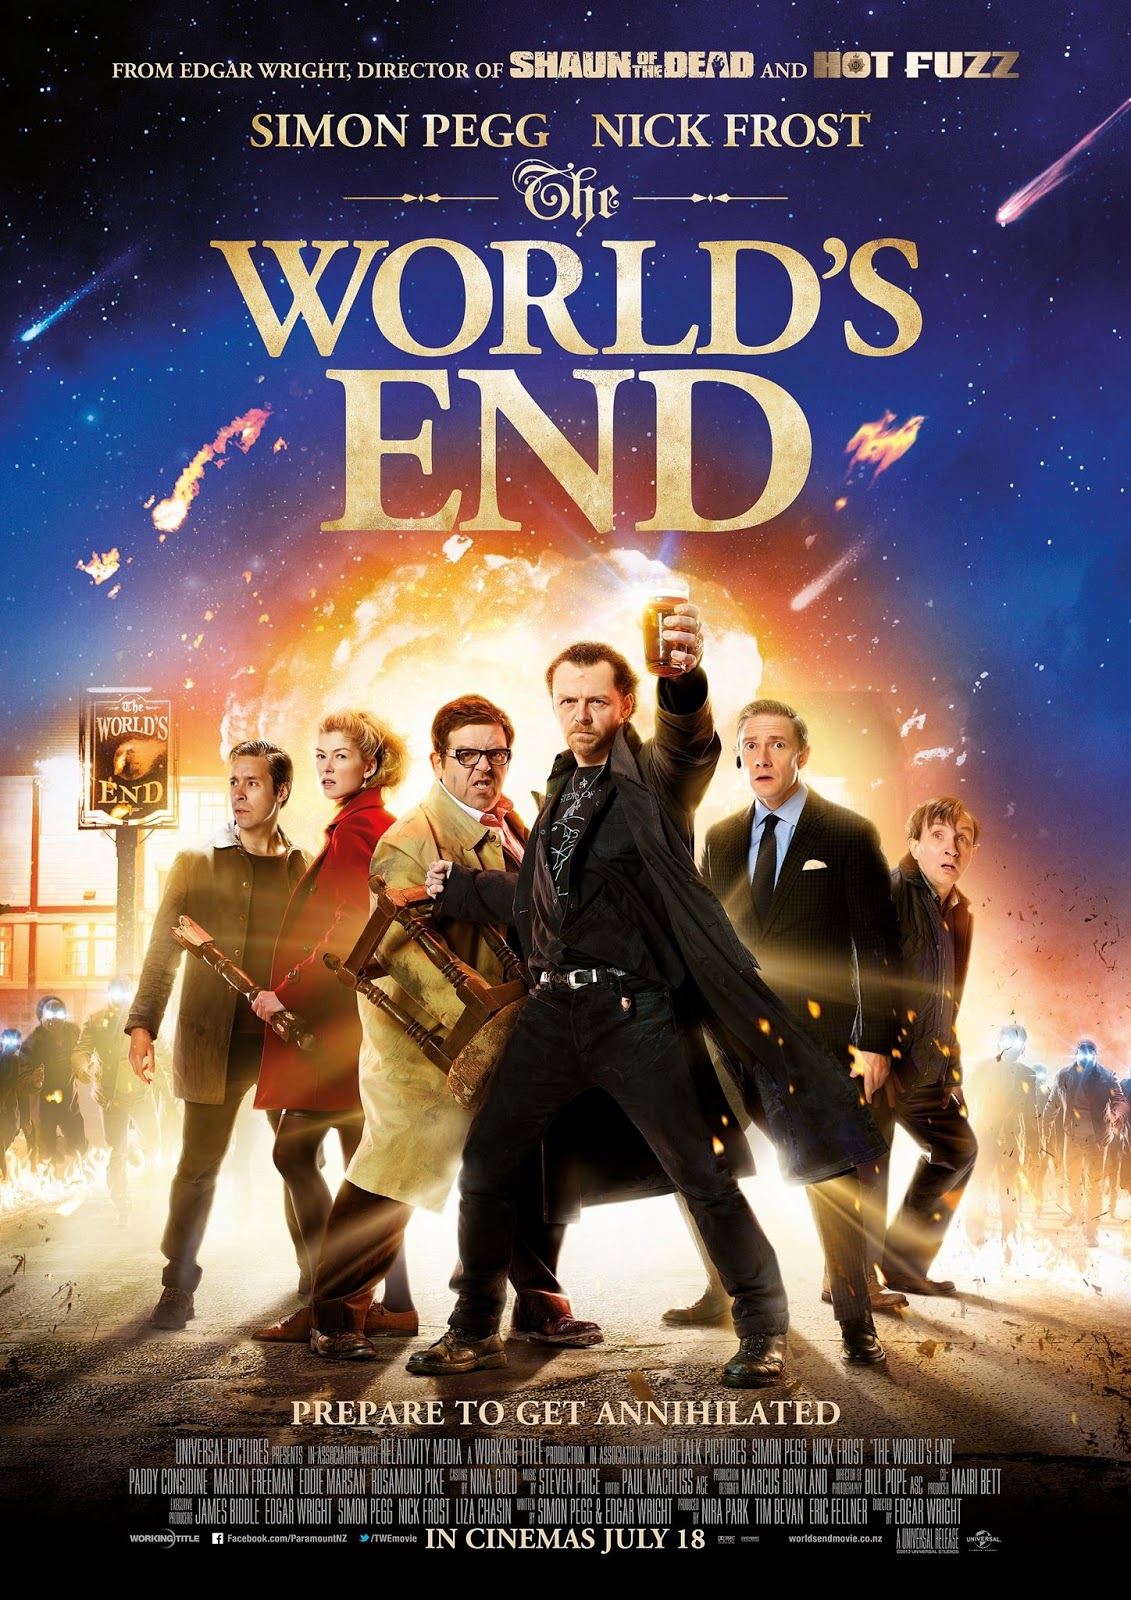 movie poster of the worlds end teaser trailer